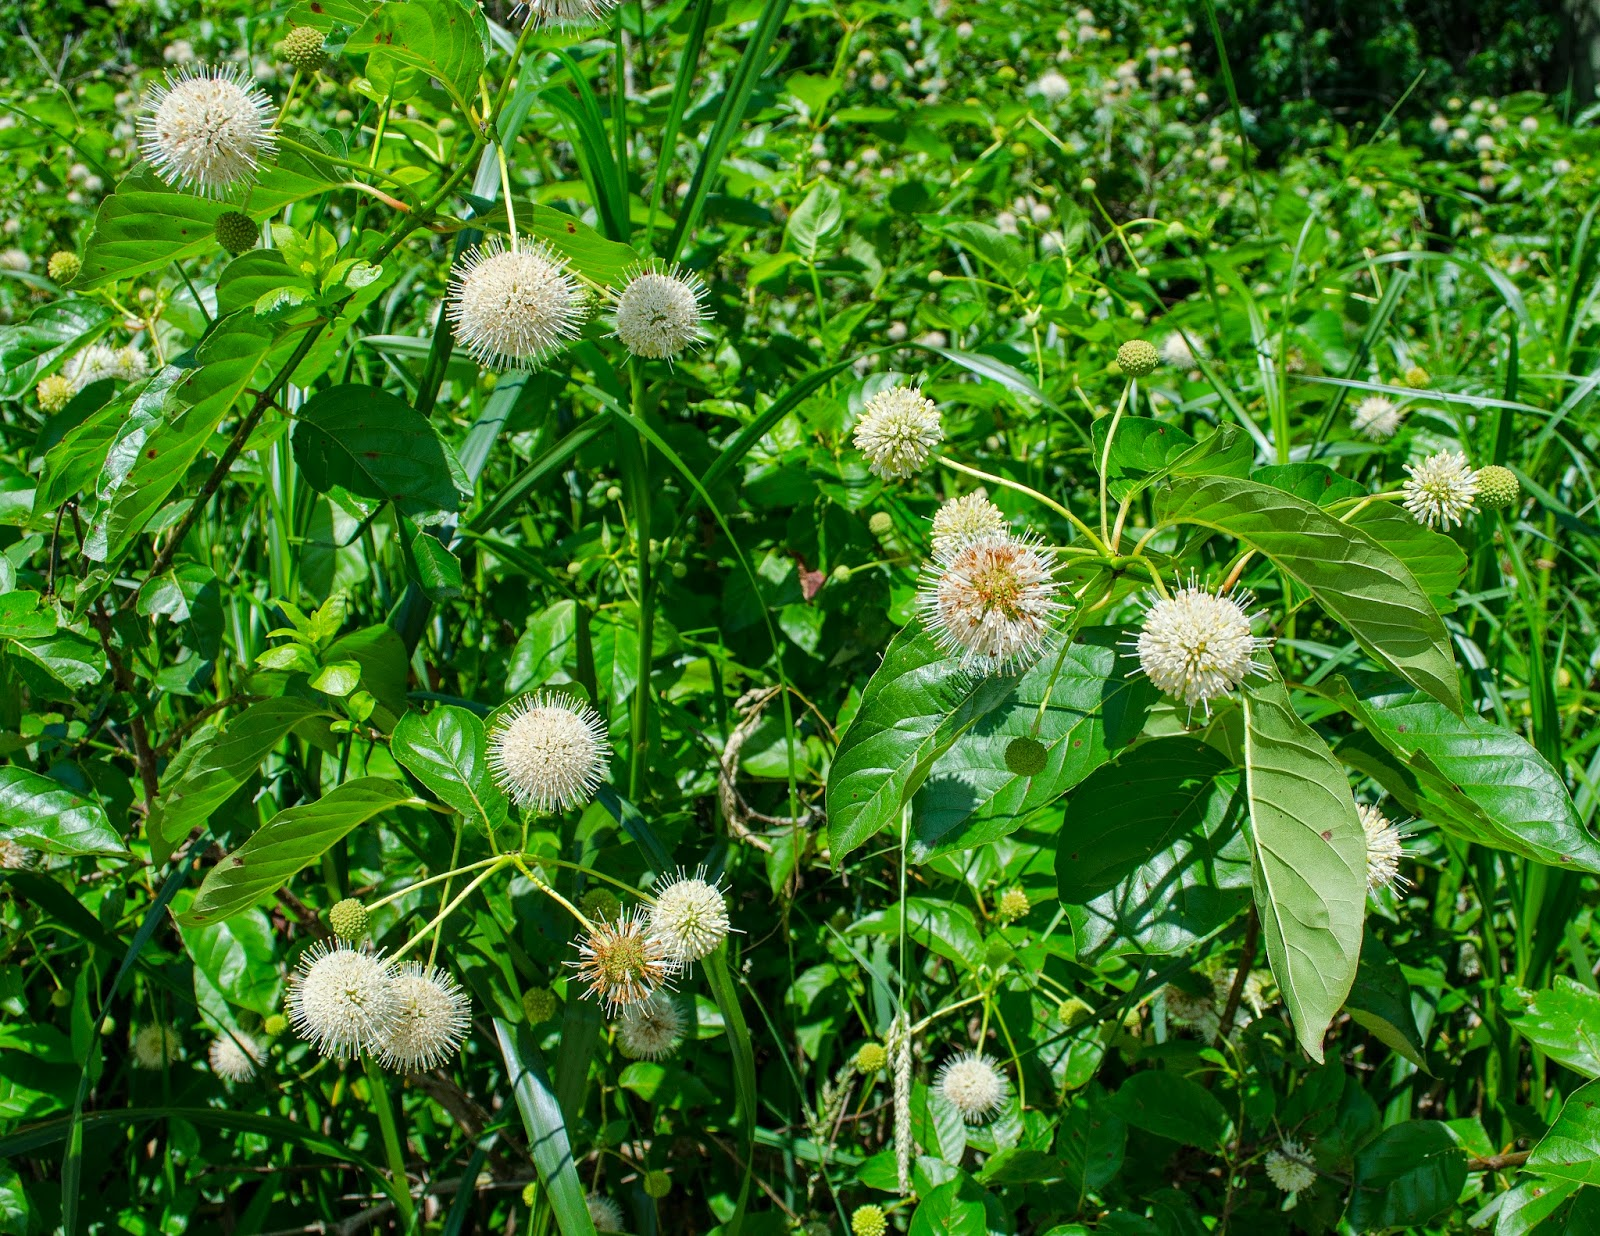 Common Buttonbush, Cephalanthus occidentalis